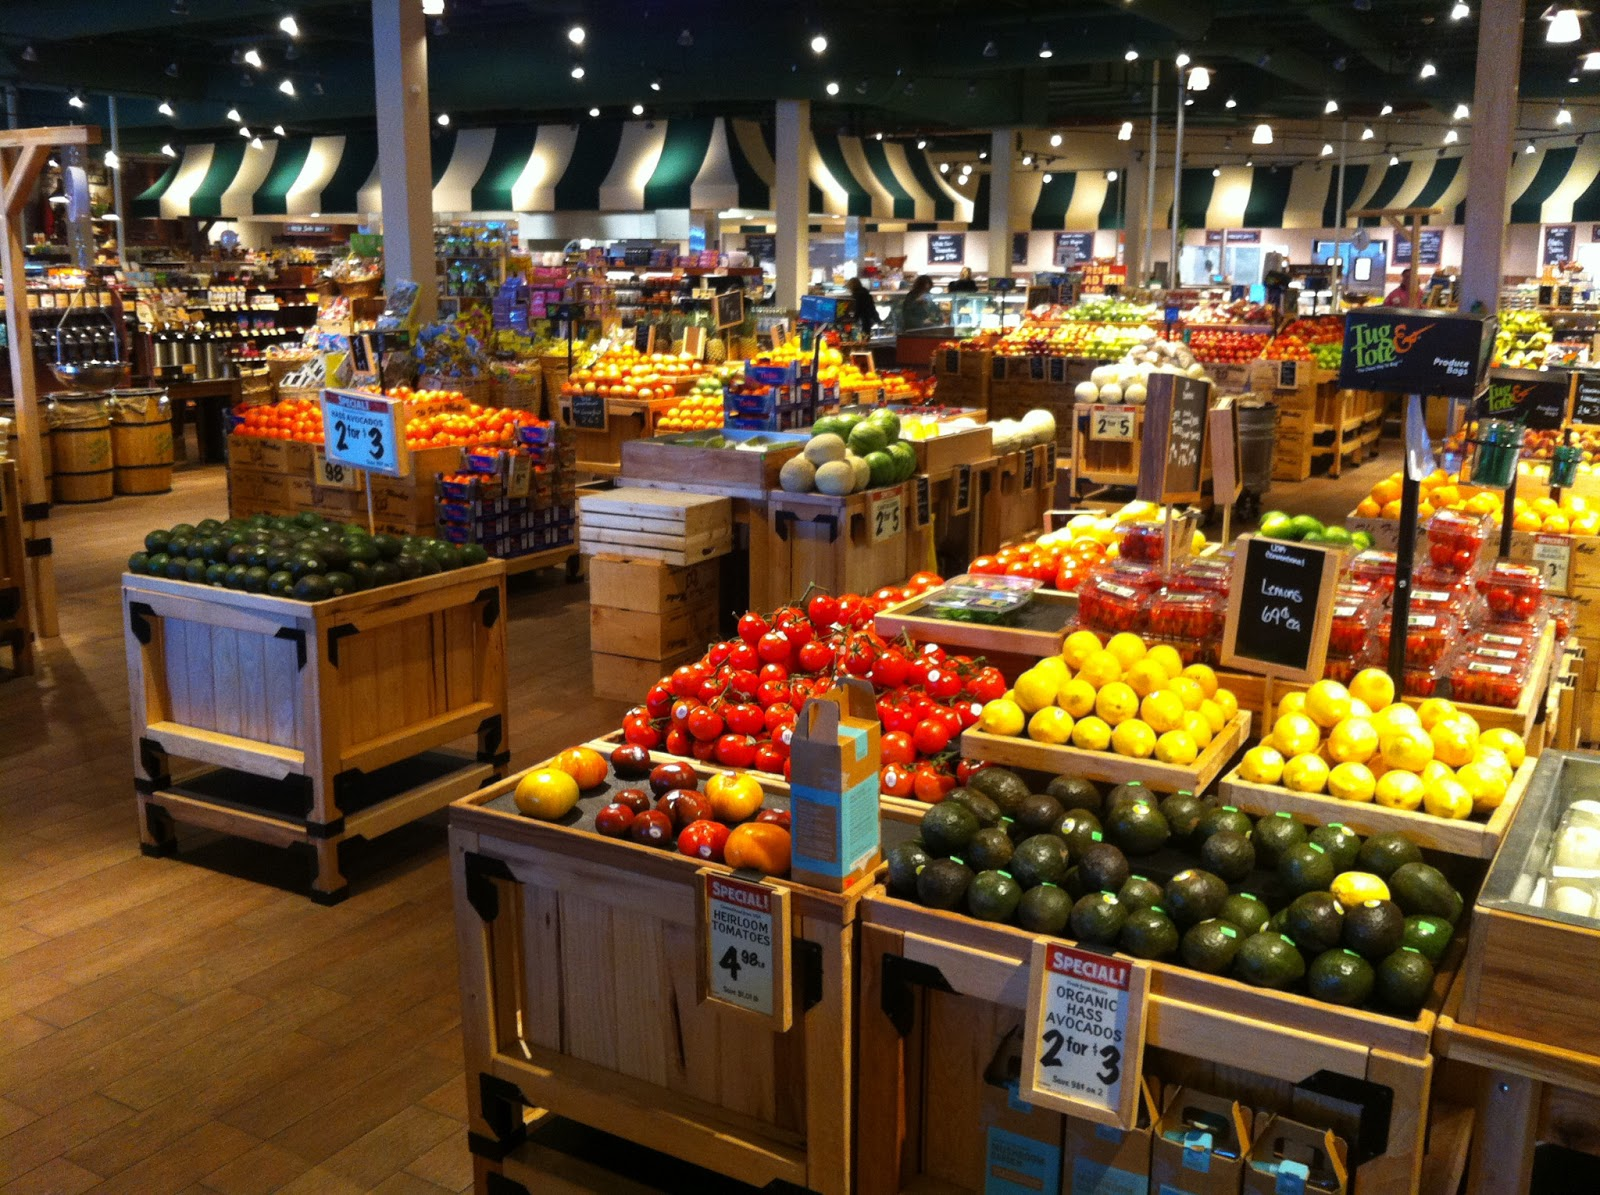 The Marketplace Food Store